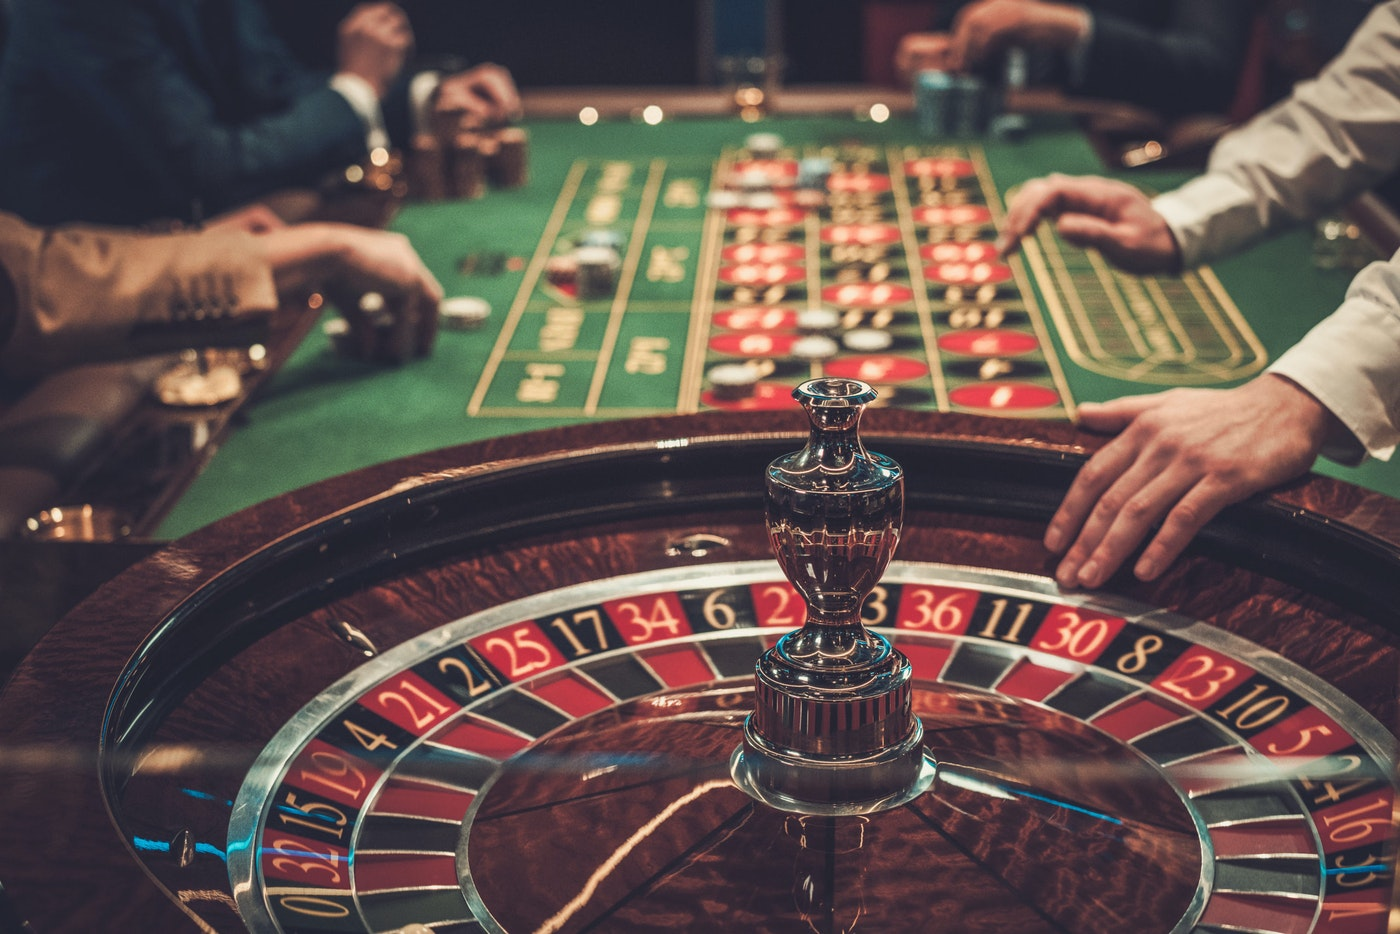 Roulette is not the unbeatable game most people think. But there are only a few roulette systems that actually work. The best systems are revealed bel